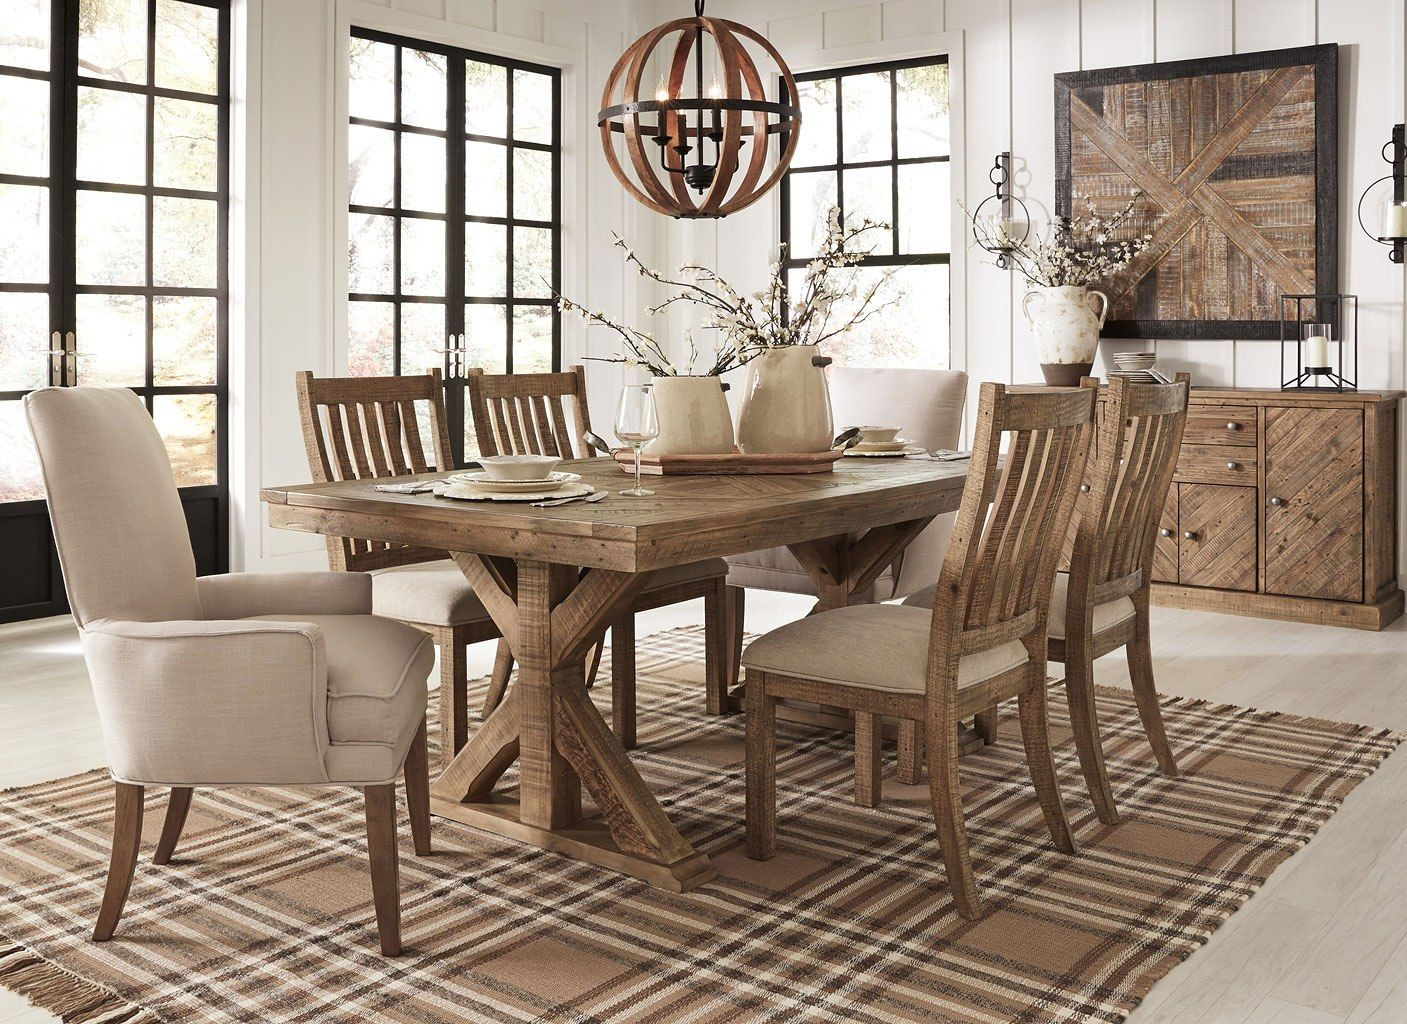 Grindleburg Dining Room Set W Light Brown Chairs Farmhouse